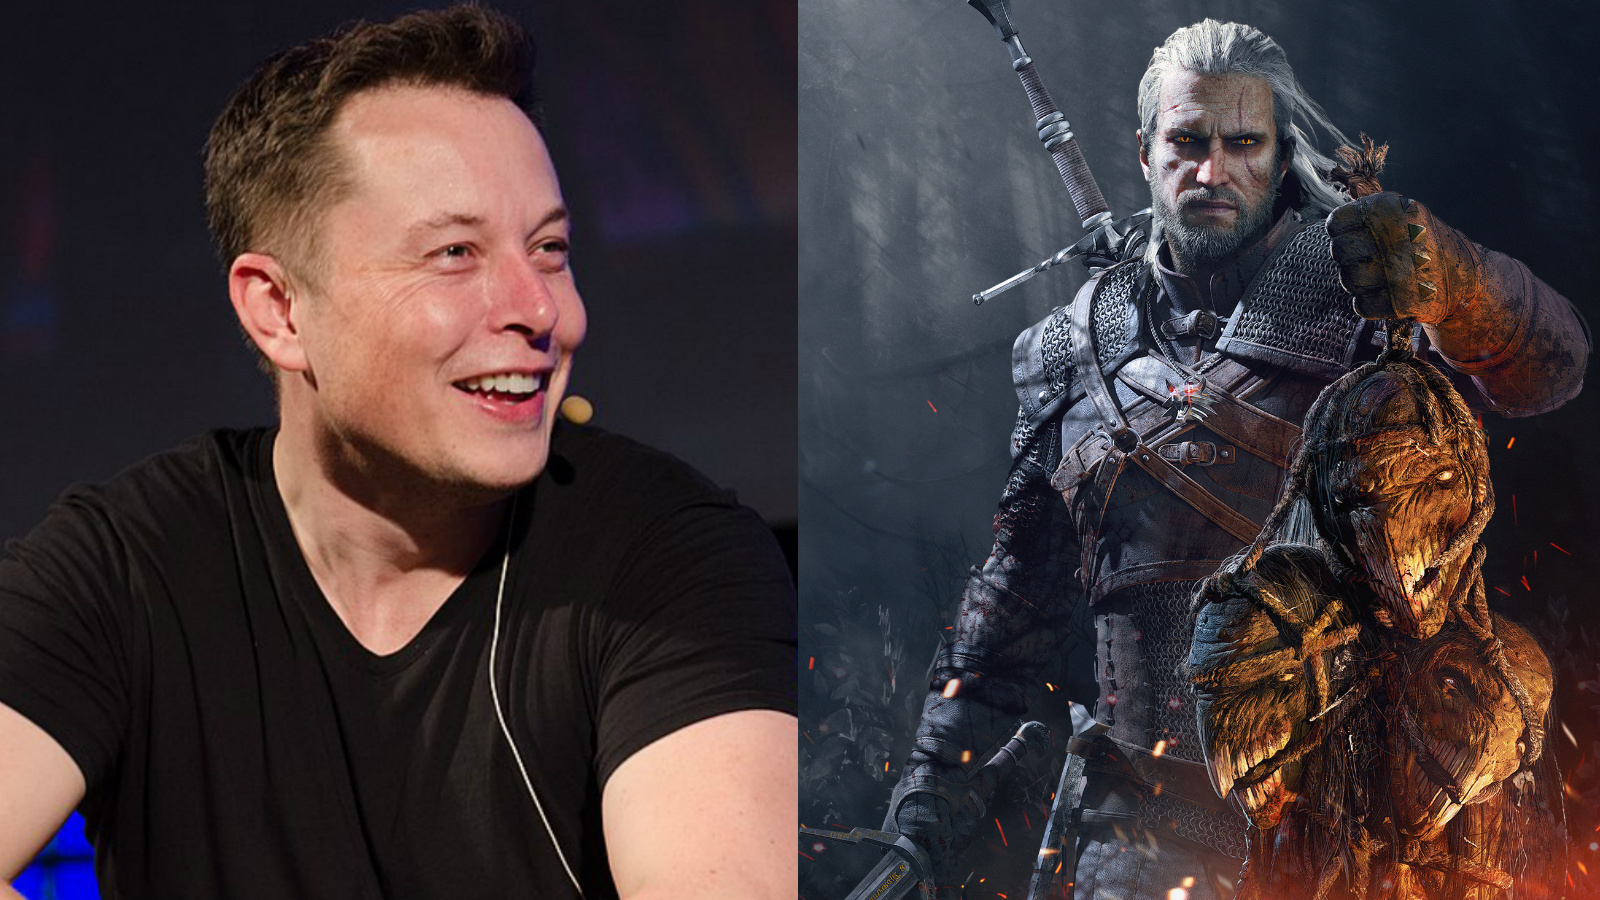 An image of Elon Musk and Geralt from The Witcher